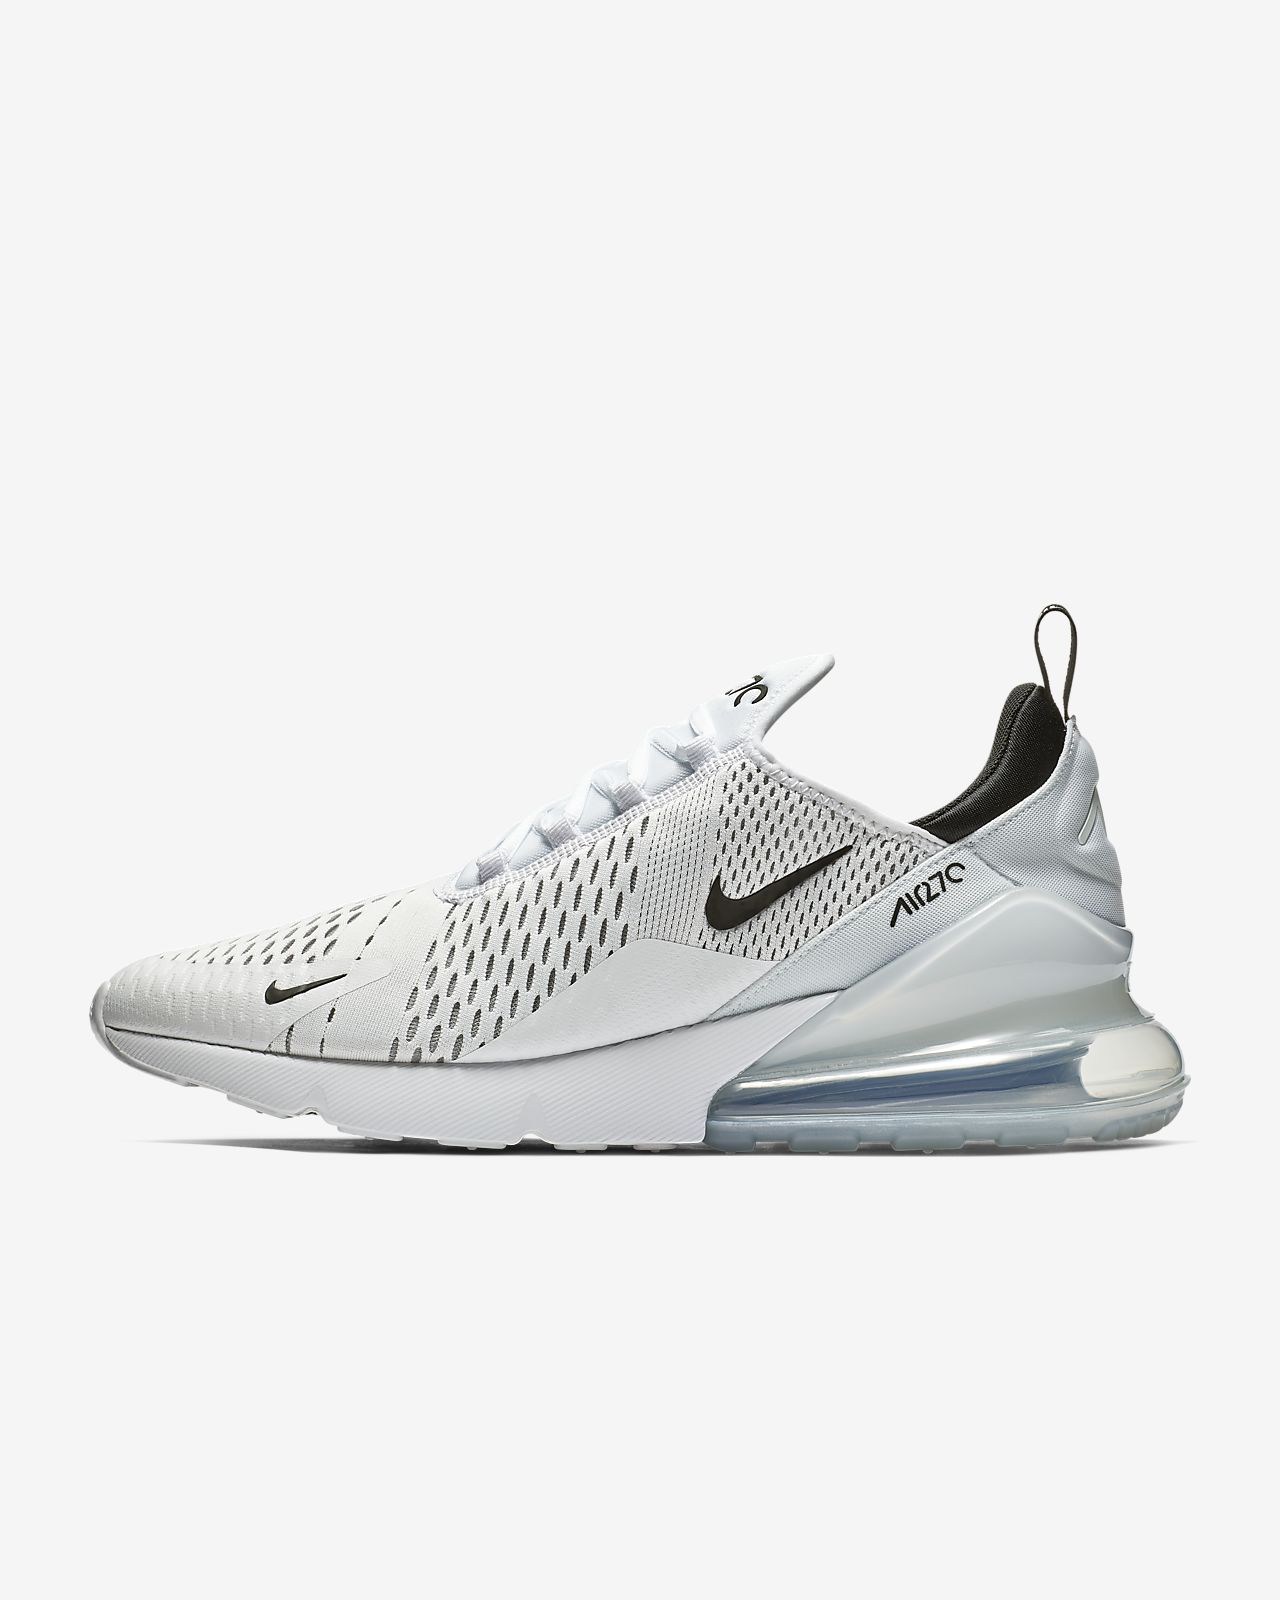 335a7f9a Nike Air Max 270 Men's Shoe